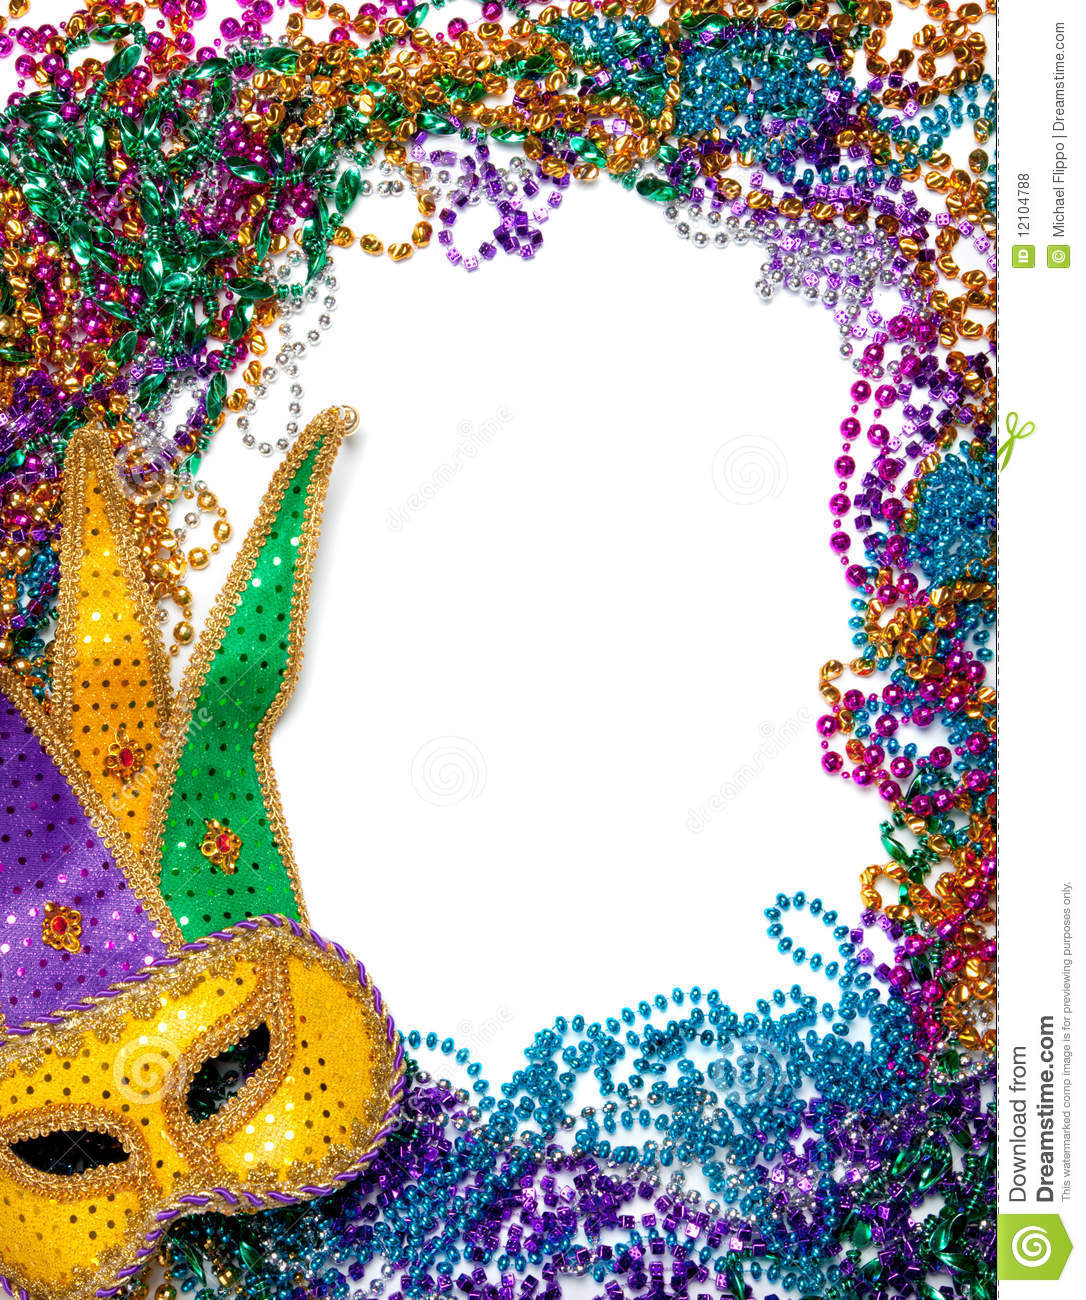 Border Made Of Mardi Gras Bead And Mask On White Royalty Free Stock ...